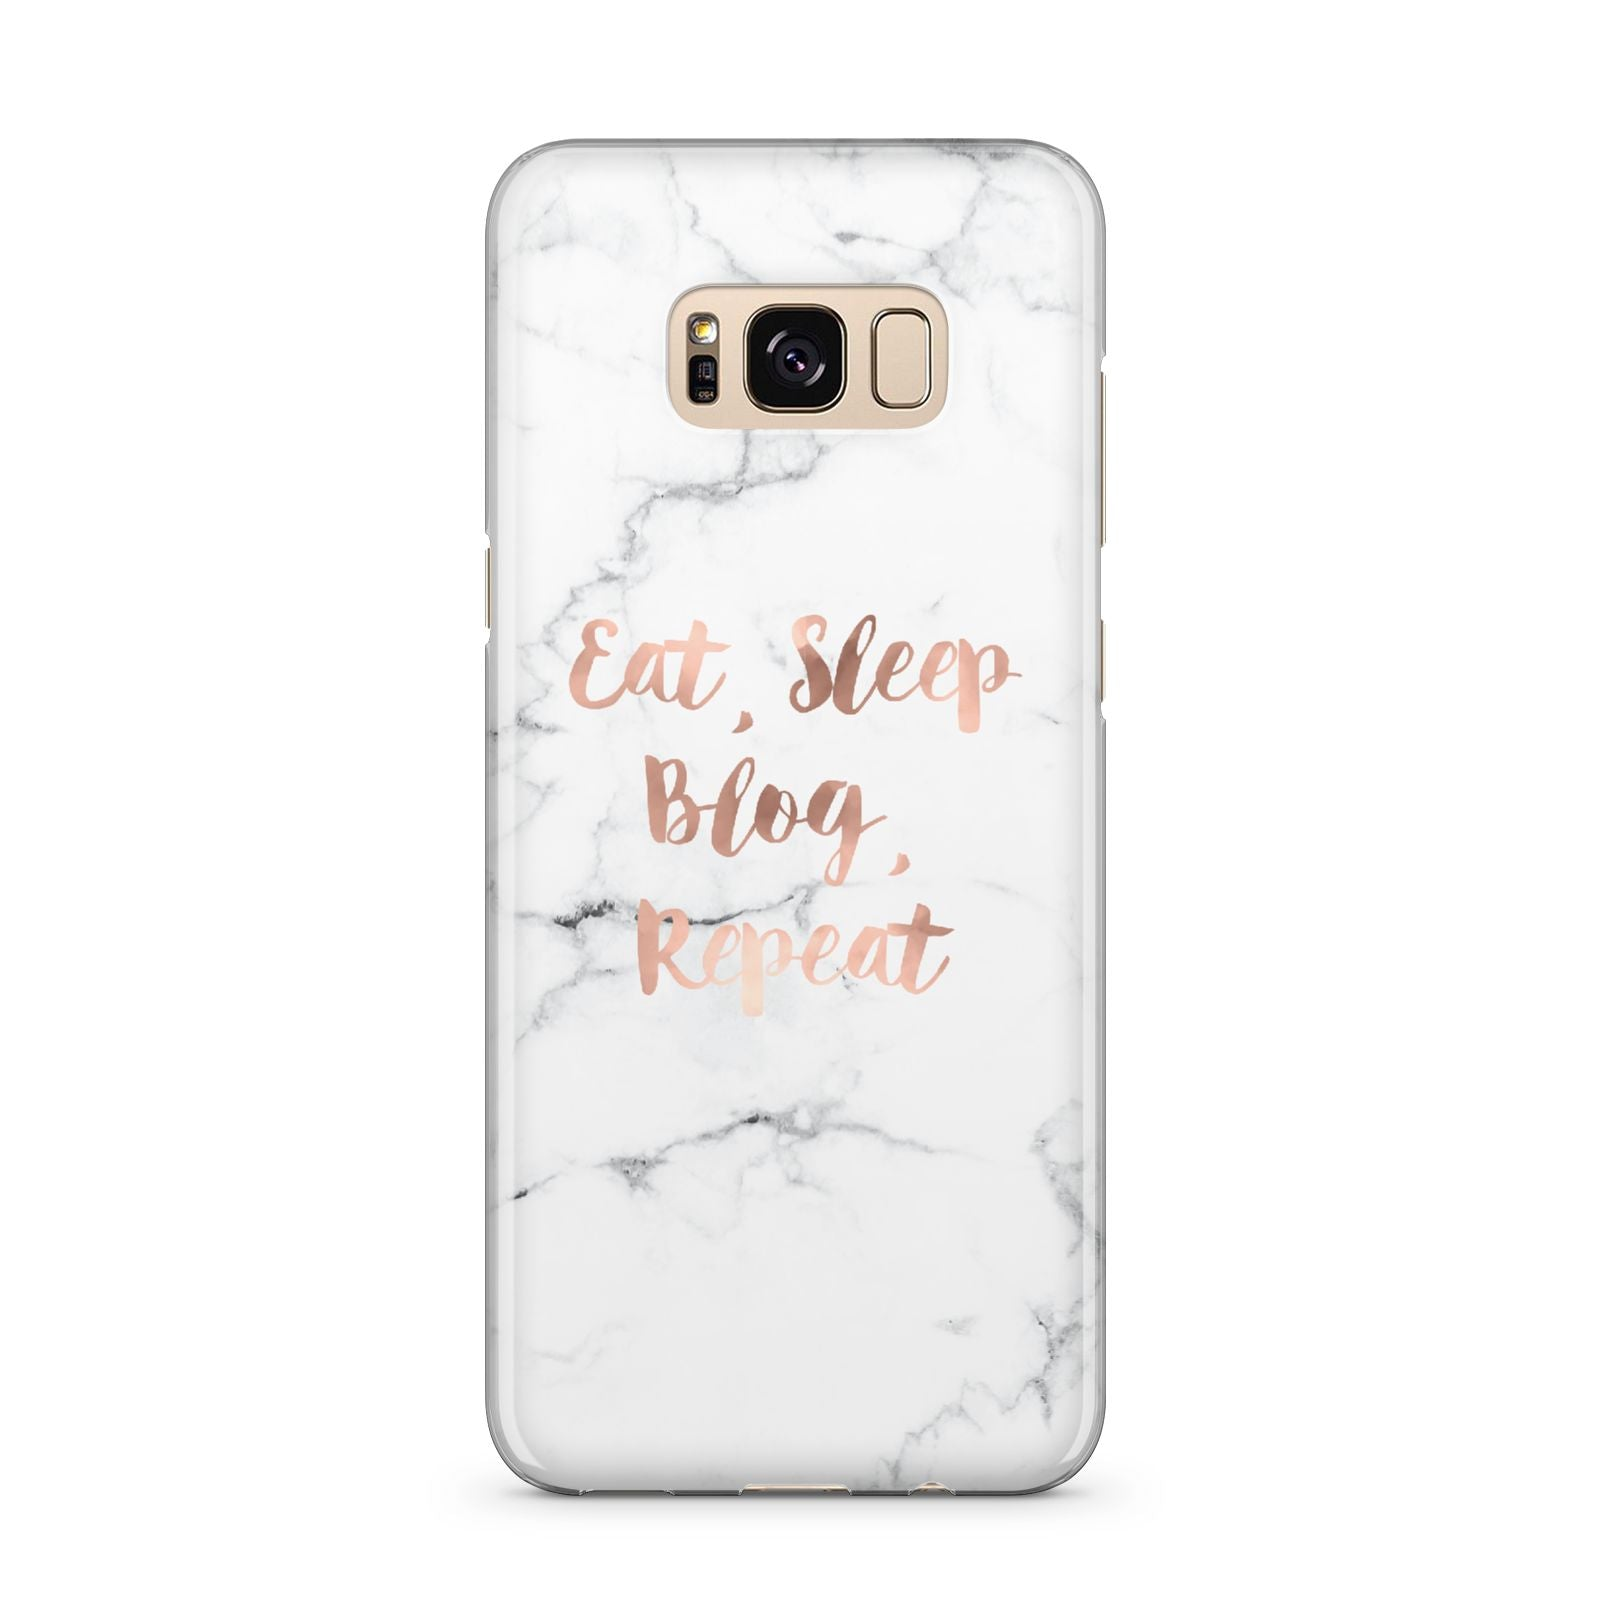 Eat Sleep Blog Repeat Marble Effect Samsung Galaxy S8 Plus Case